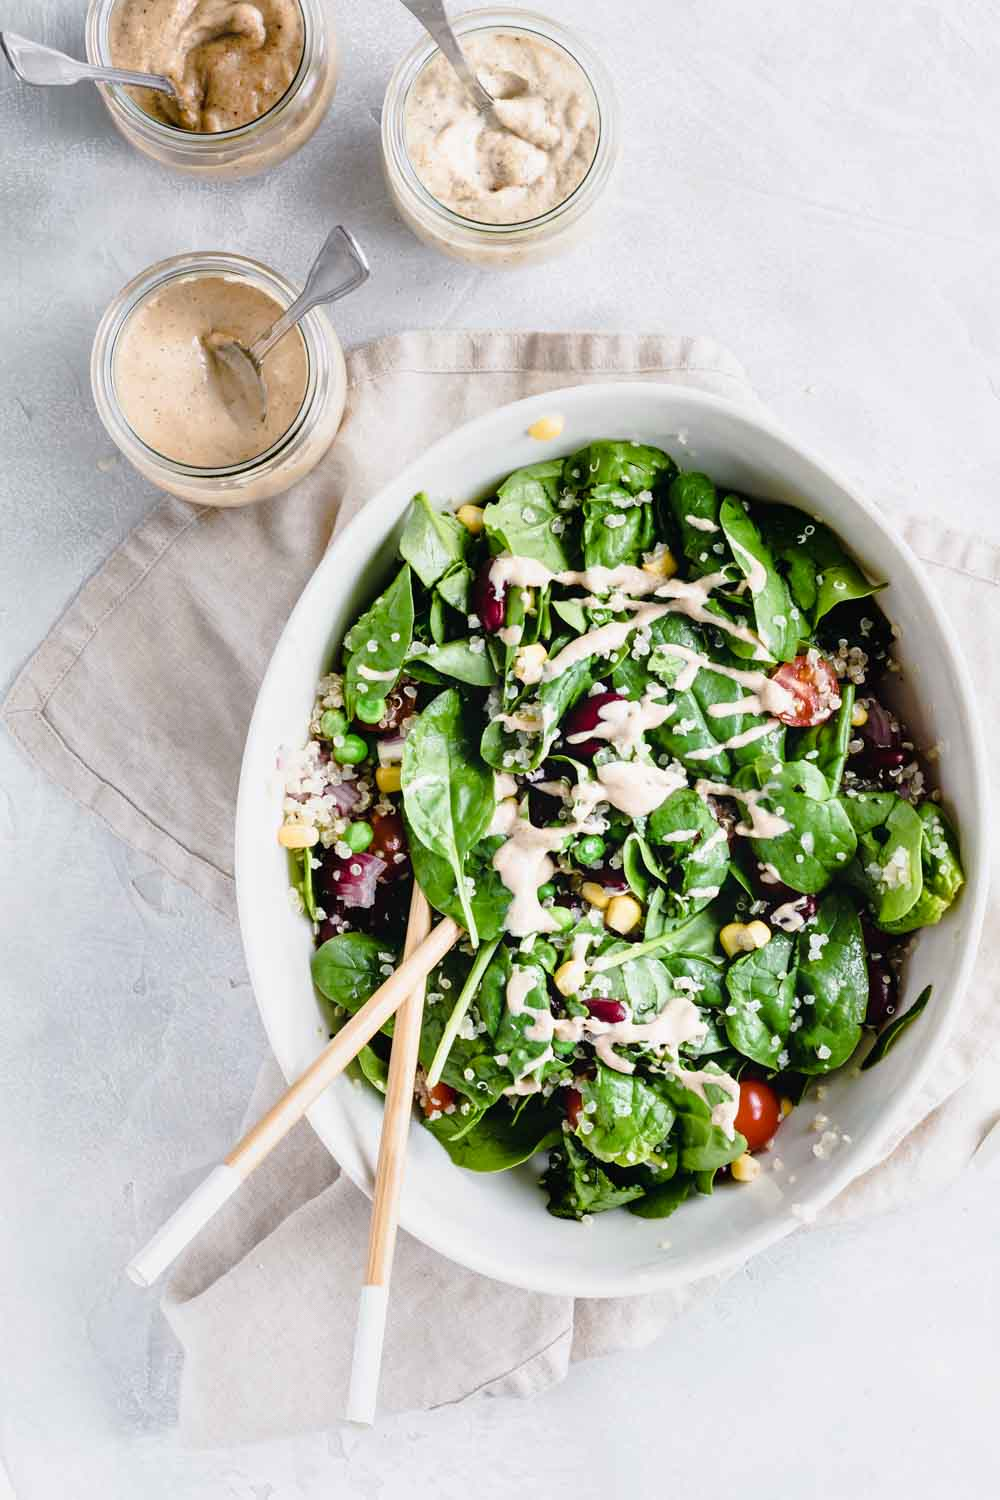 Quinoa salad in oval bowl with chopstick on a lightbrown napkin and a light backdrop next to a small jar of dressing with a teaspoon.